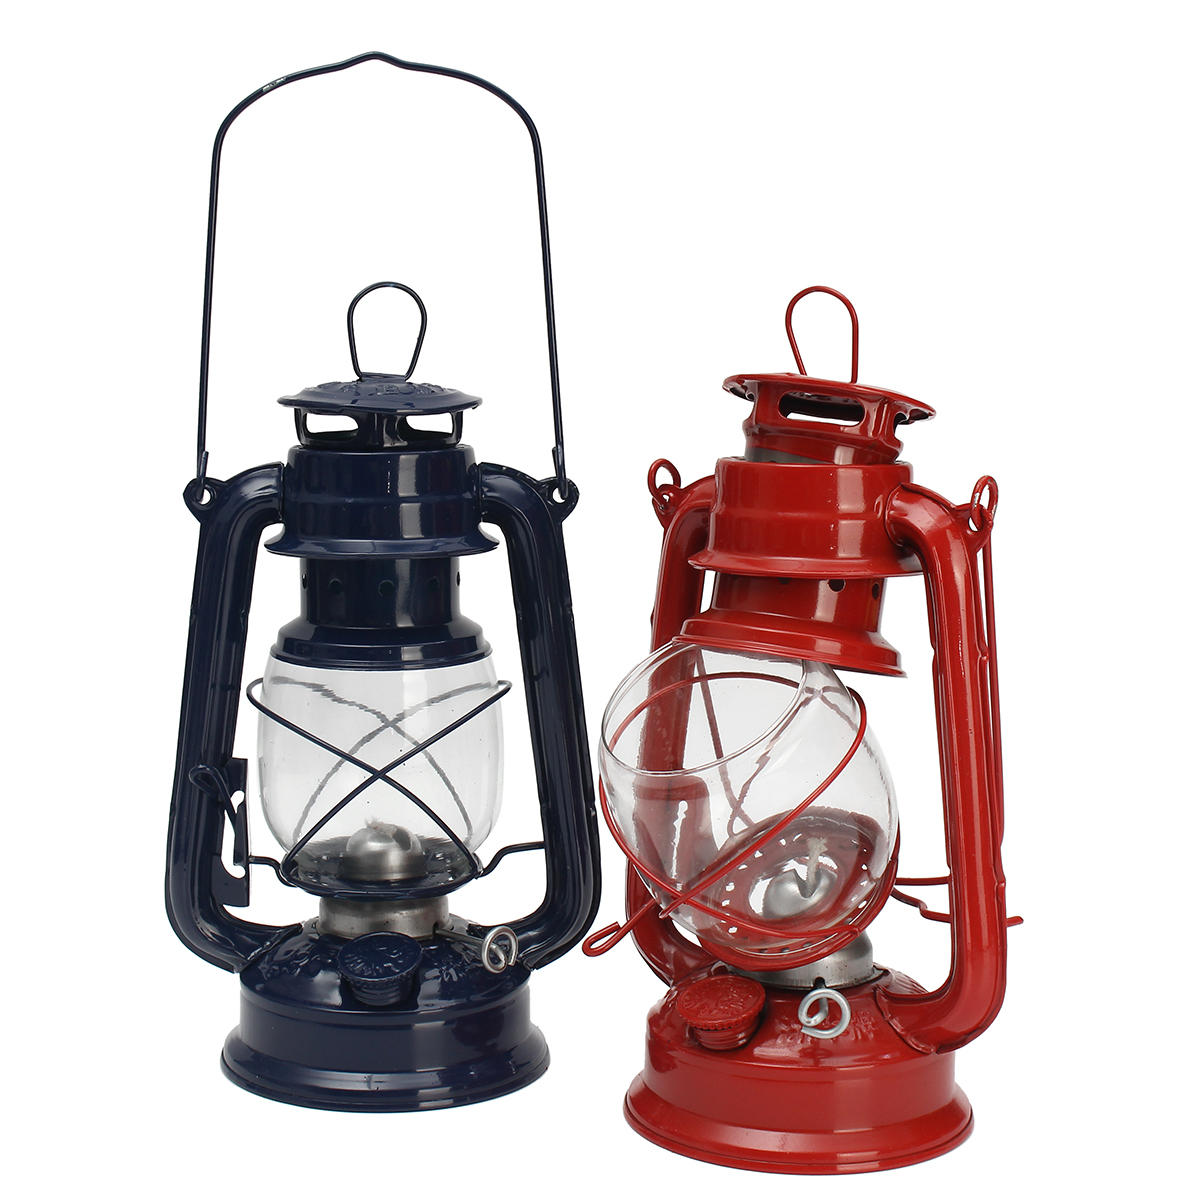 Diy Kerosene Lamp Vintage Oil Lamp Lantern Kerosene Paraffin Hurricane Lamp Light Outdoor Camping